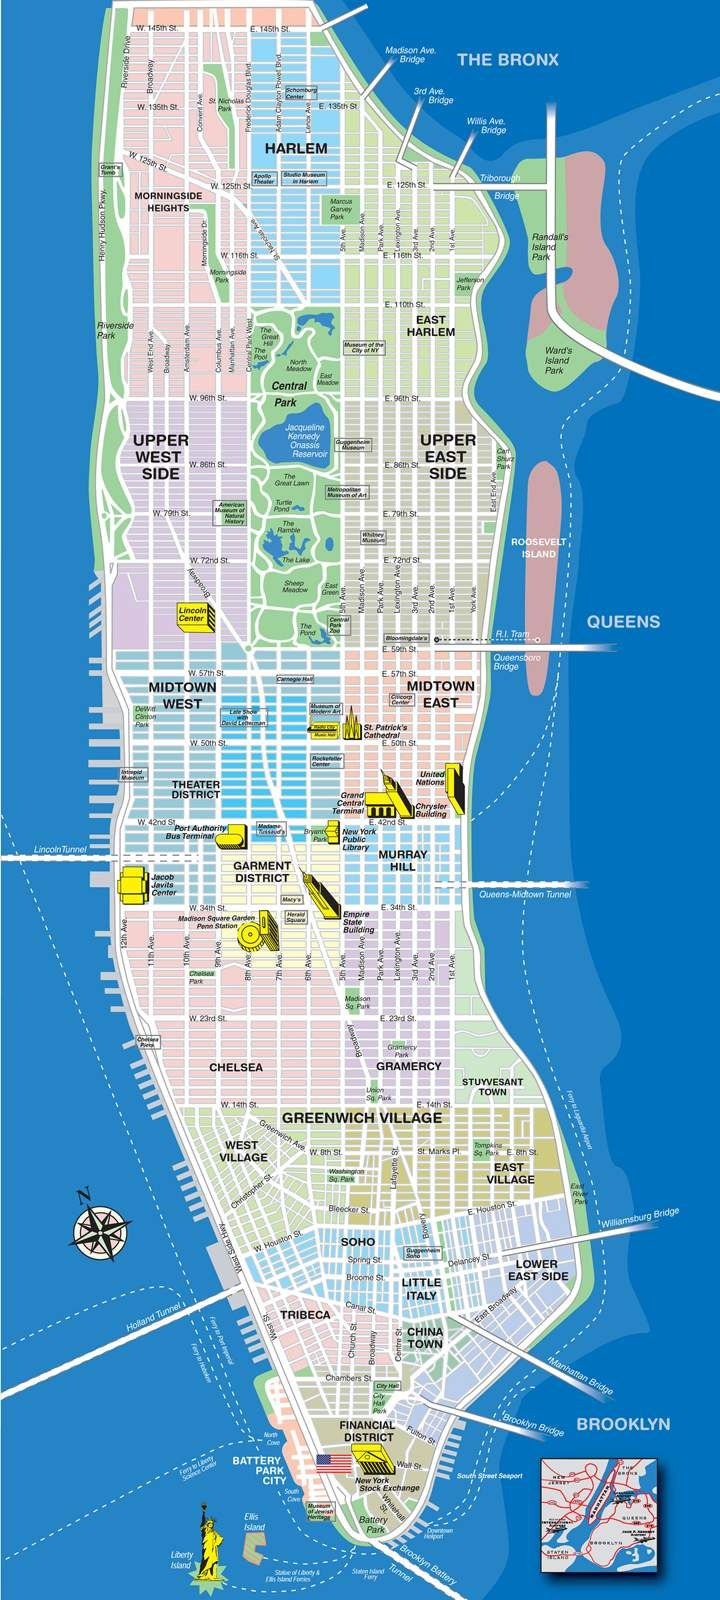 Plan de la ciudad Manhattan